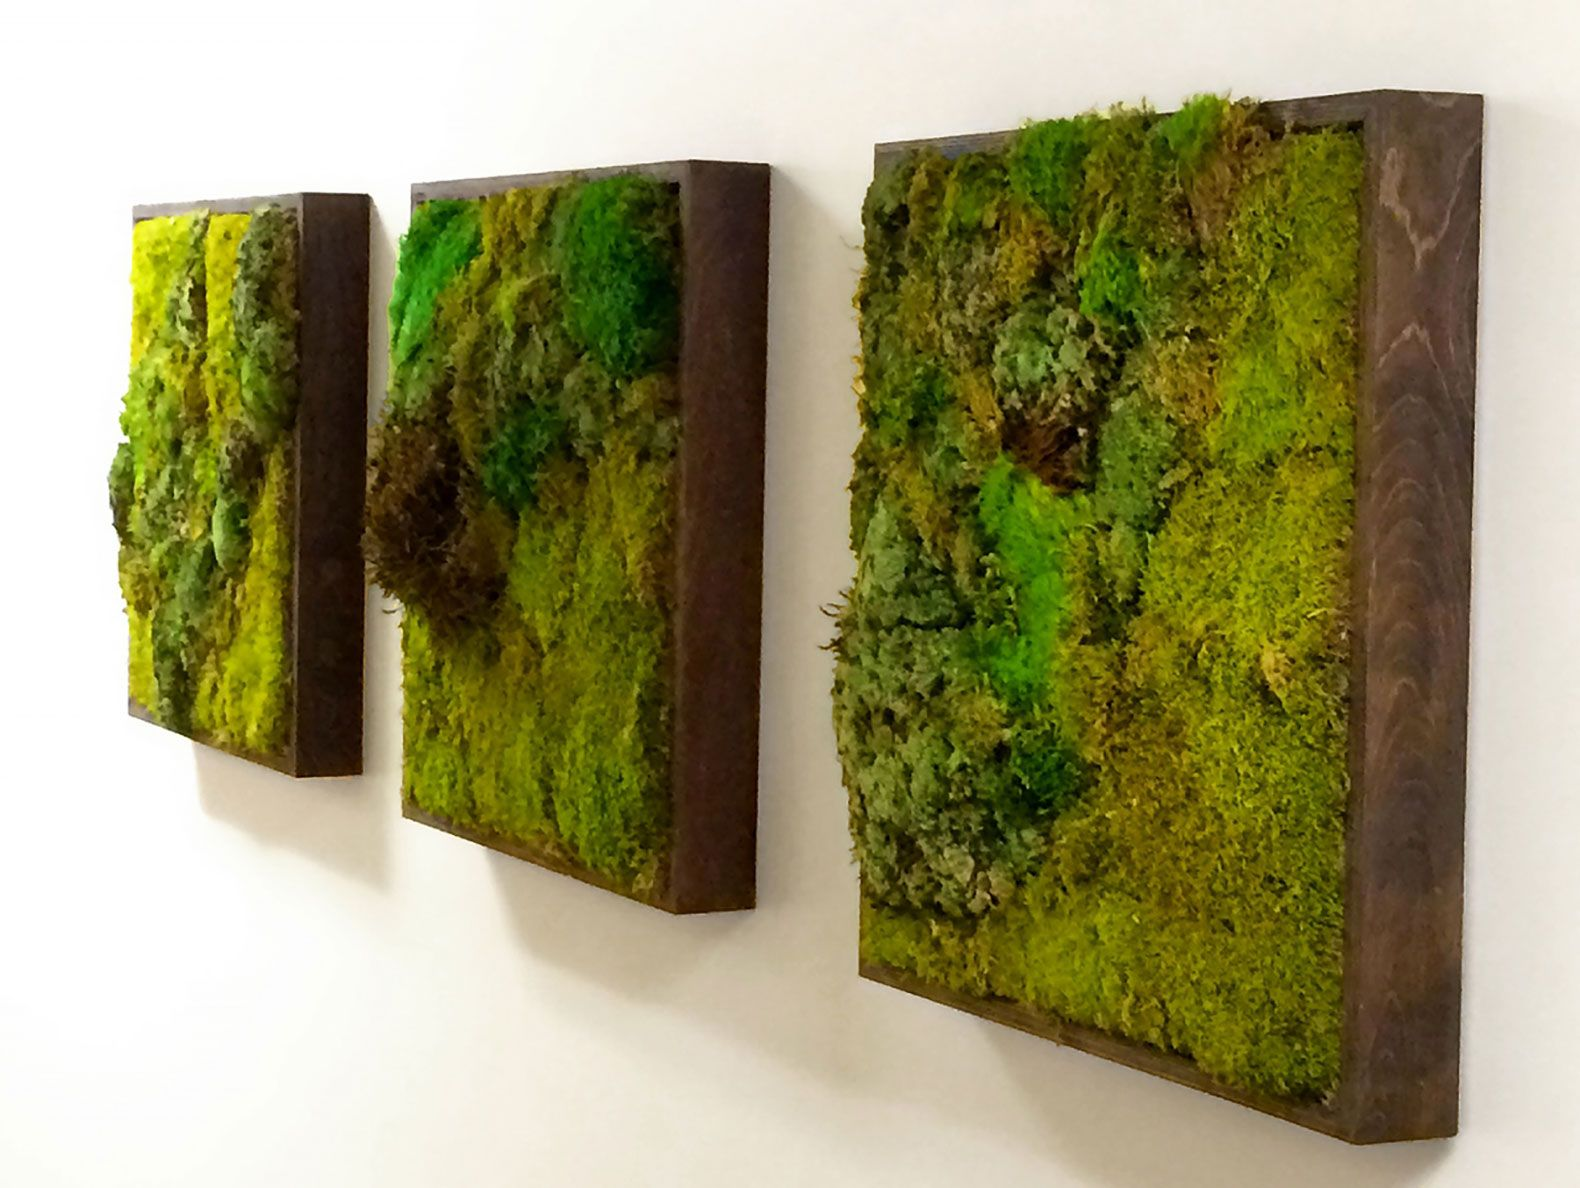 Superieur Moss Walls: The Newest Trend In Biophilic Interiors